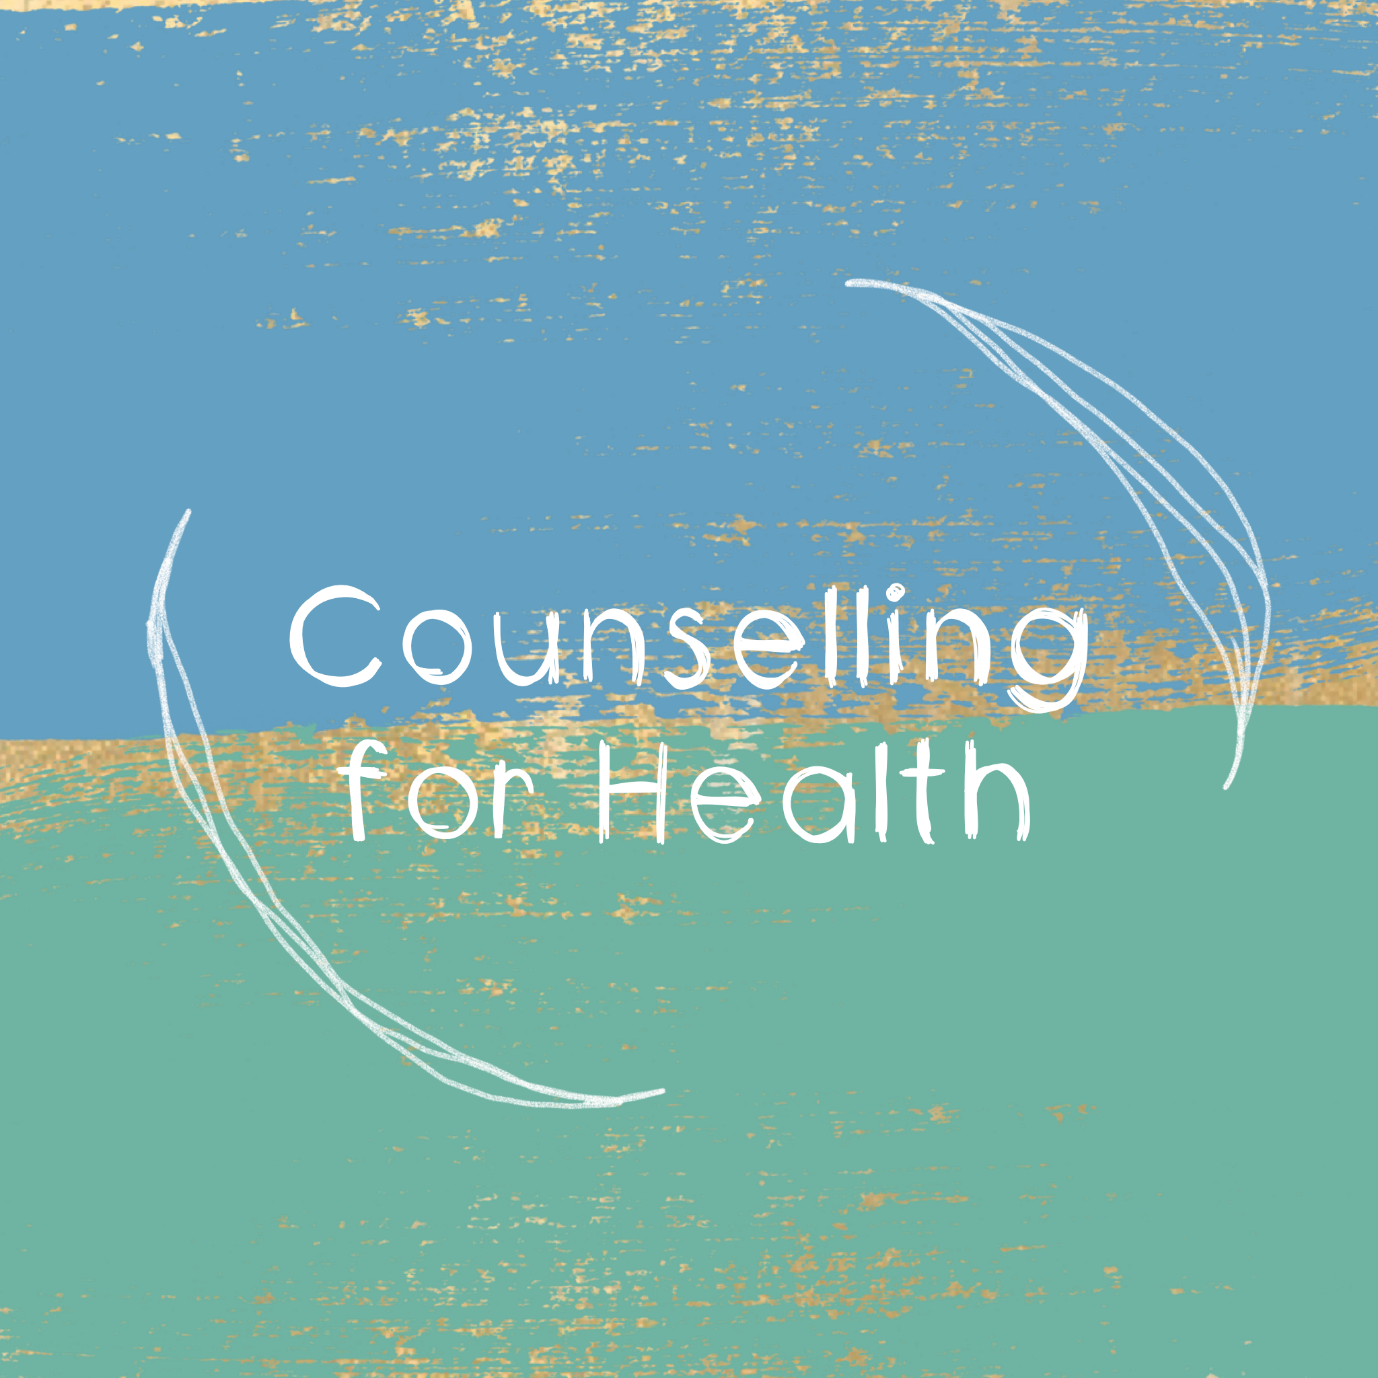 Counselling for Health